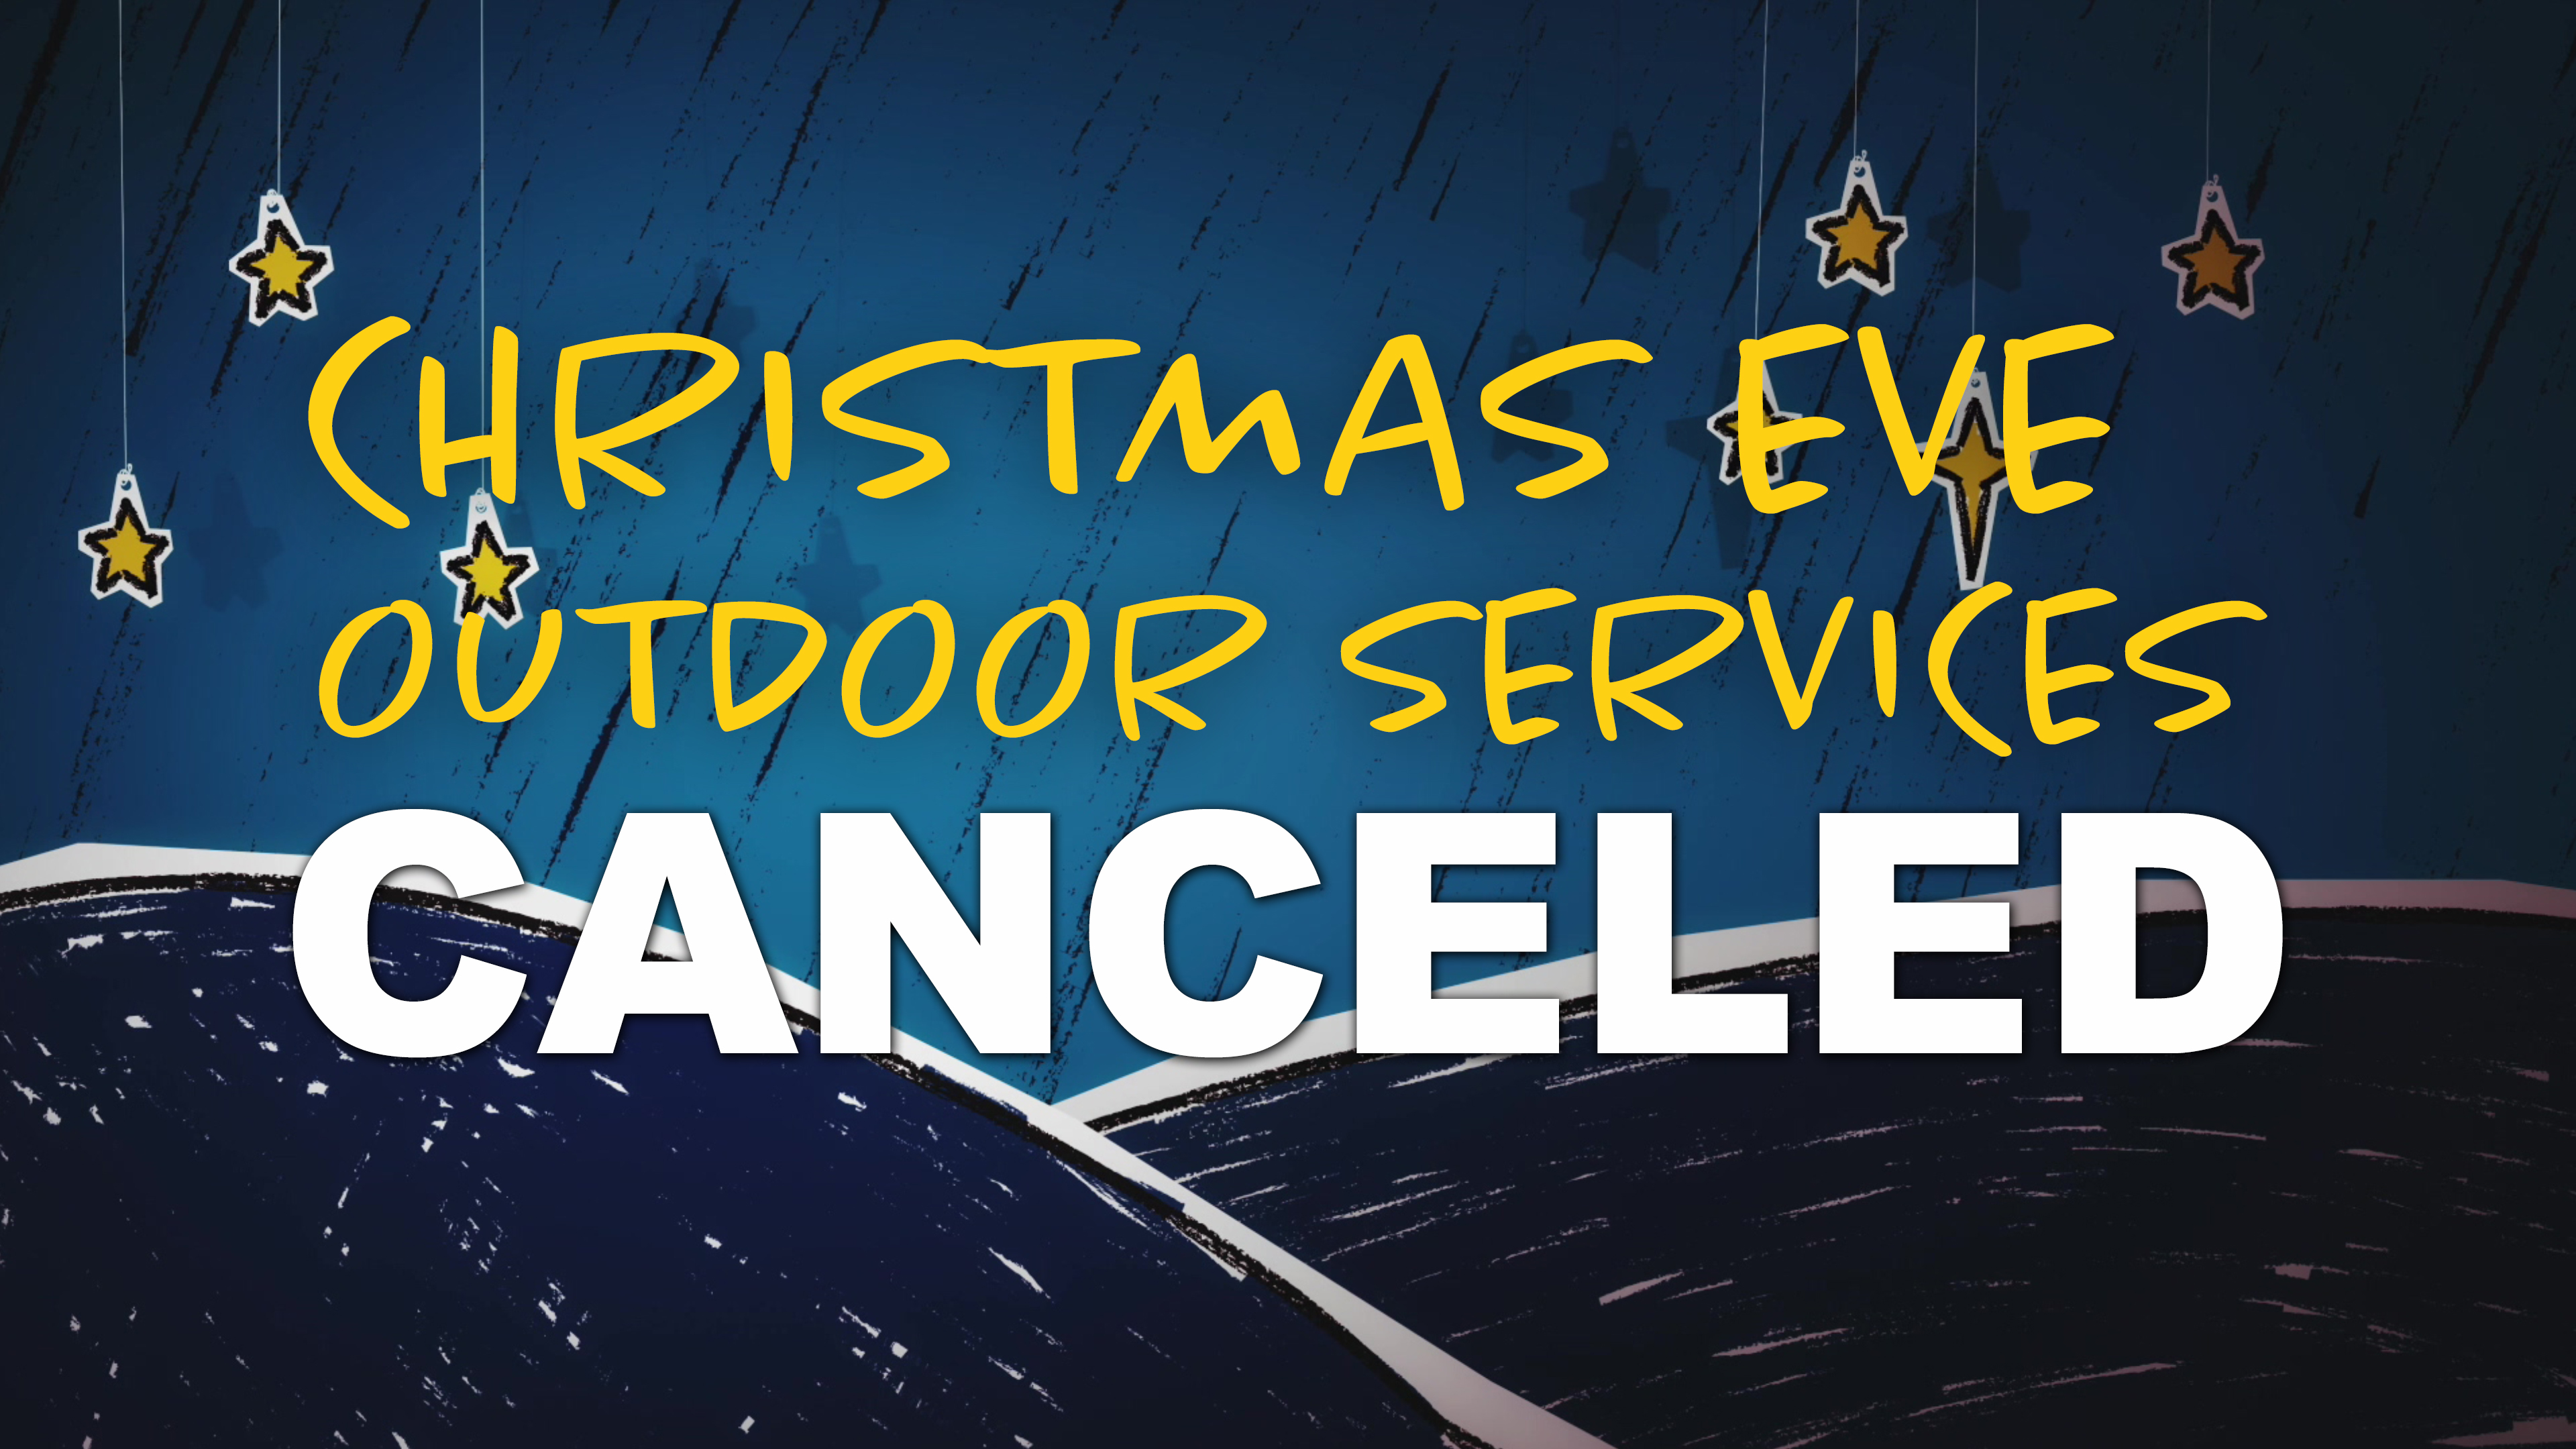 Christmas Outdoor Canceled